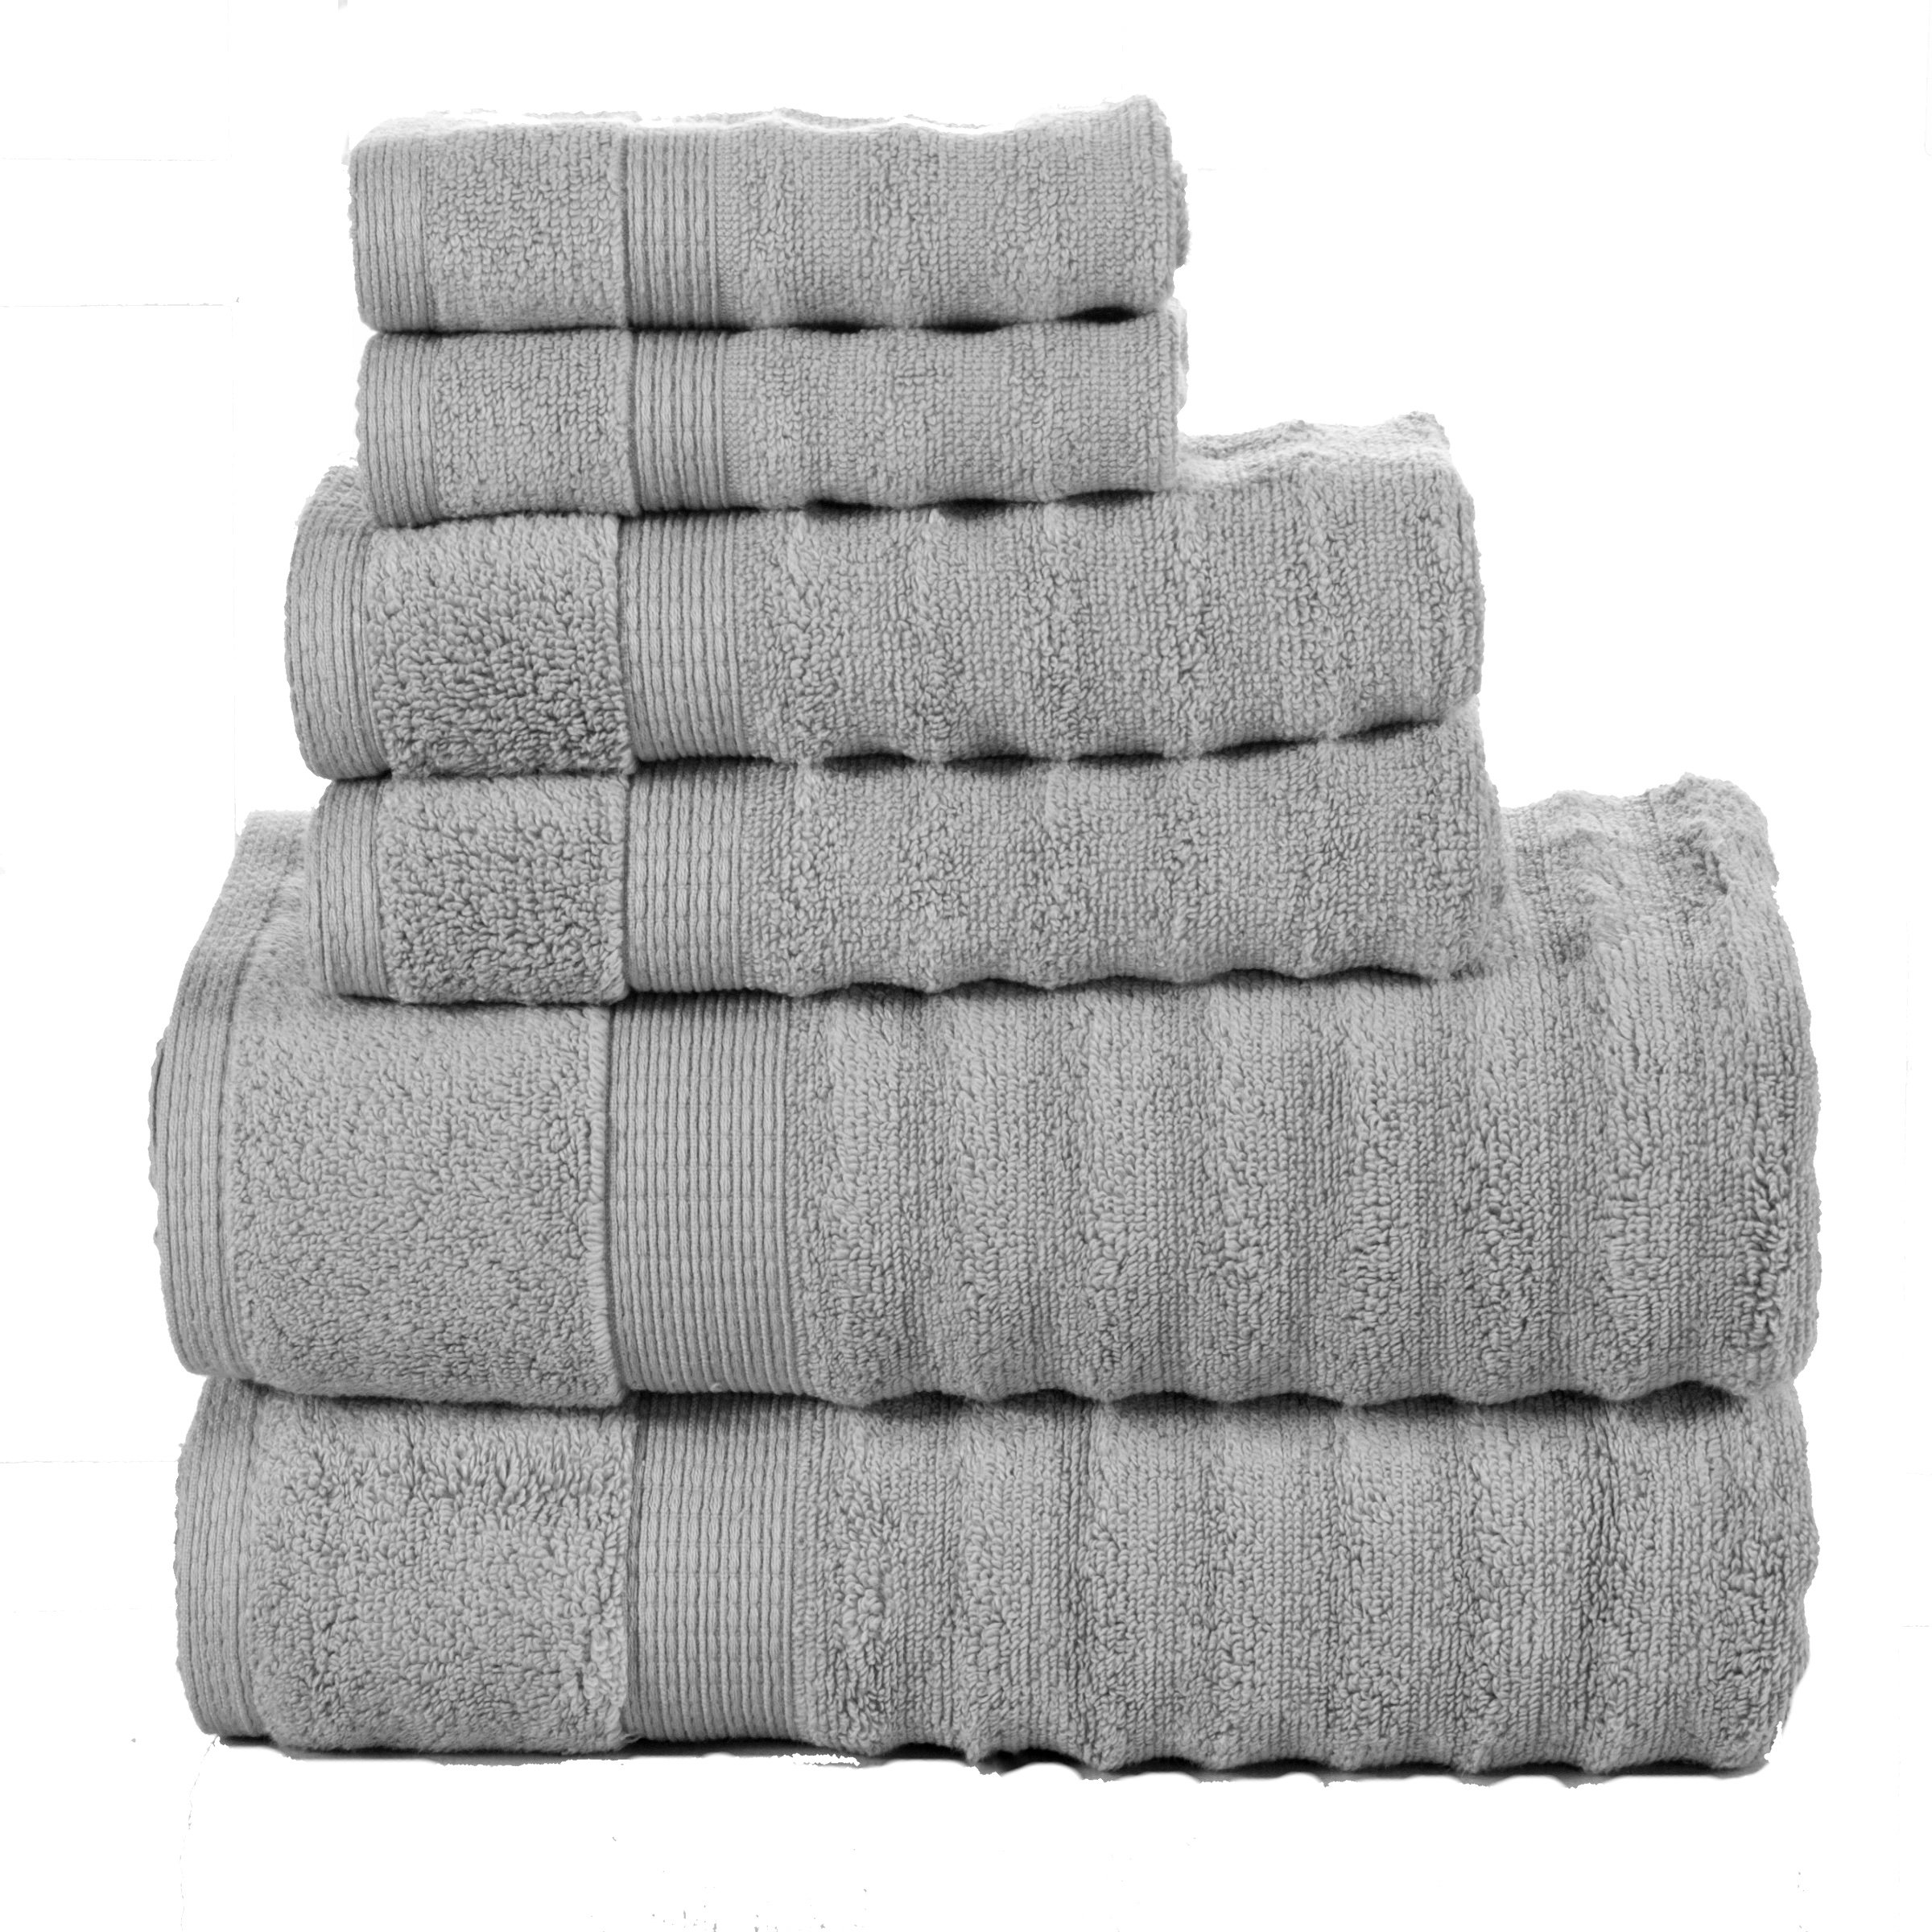 Affinity Home Collection 6 Piece Quick Dry Elegance Spa Zero Twist Cotton Ribbed Towel Set, Silver